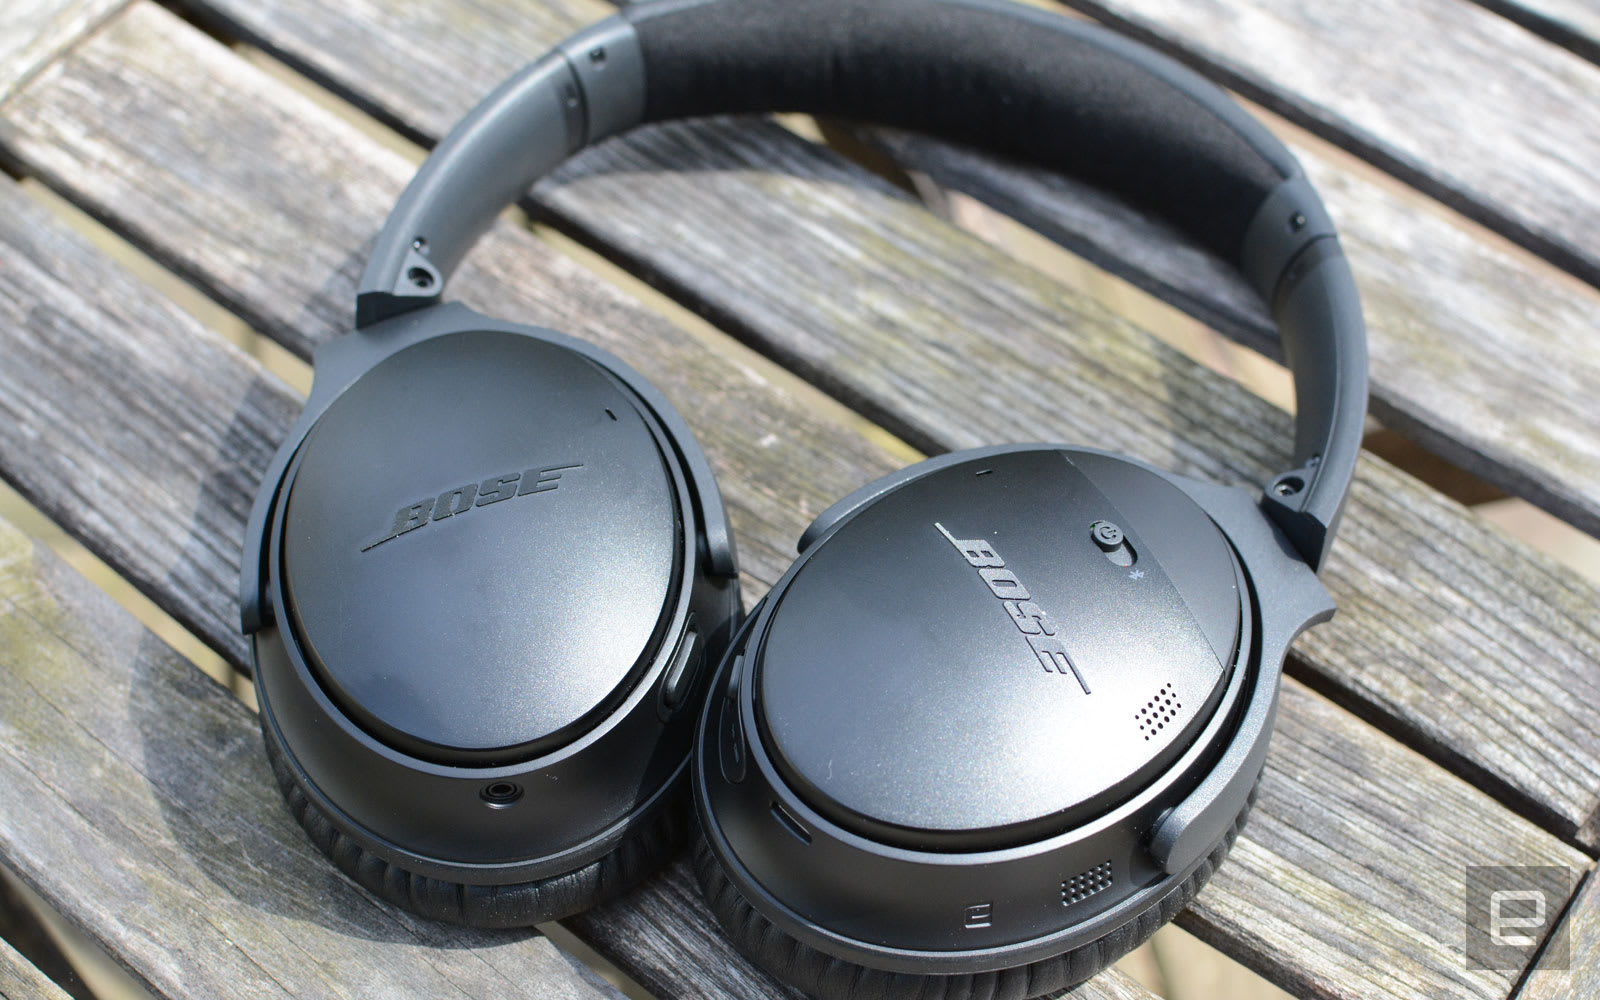 Bose's QC35 II wireless headphones now support Alexa